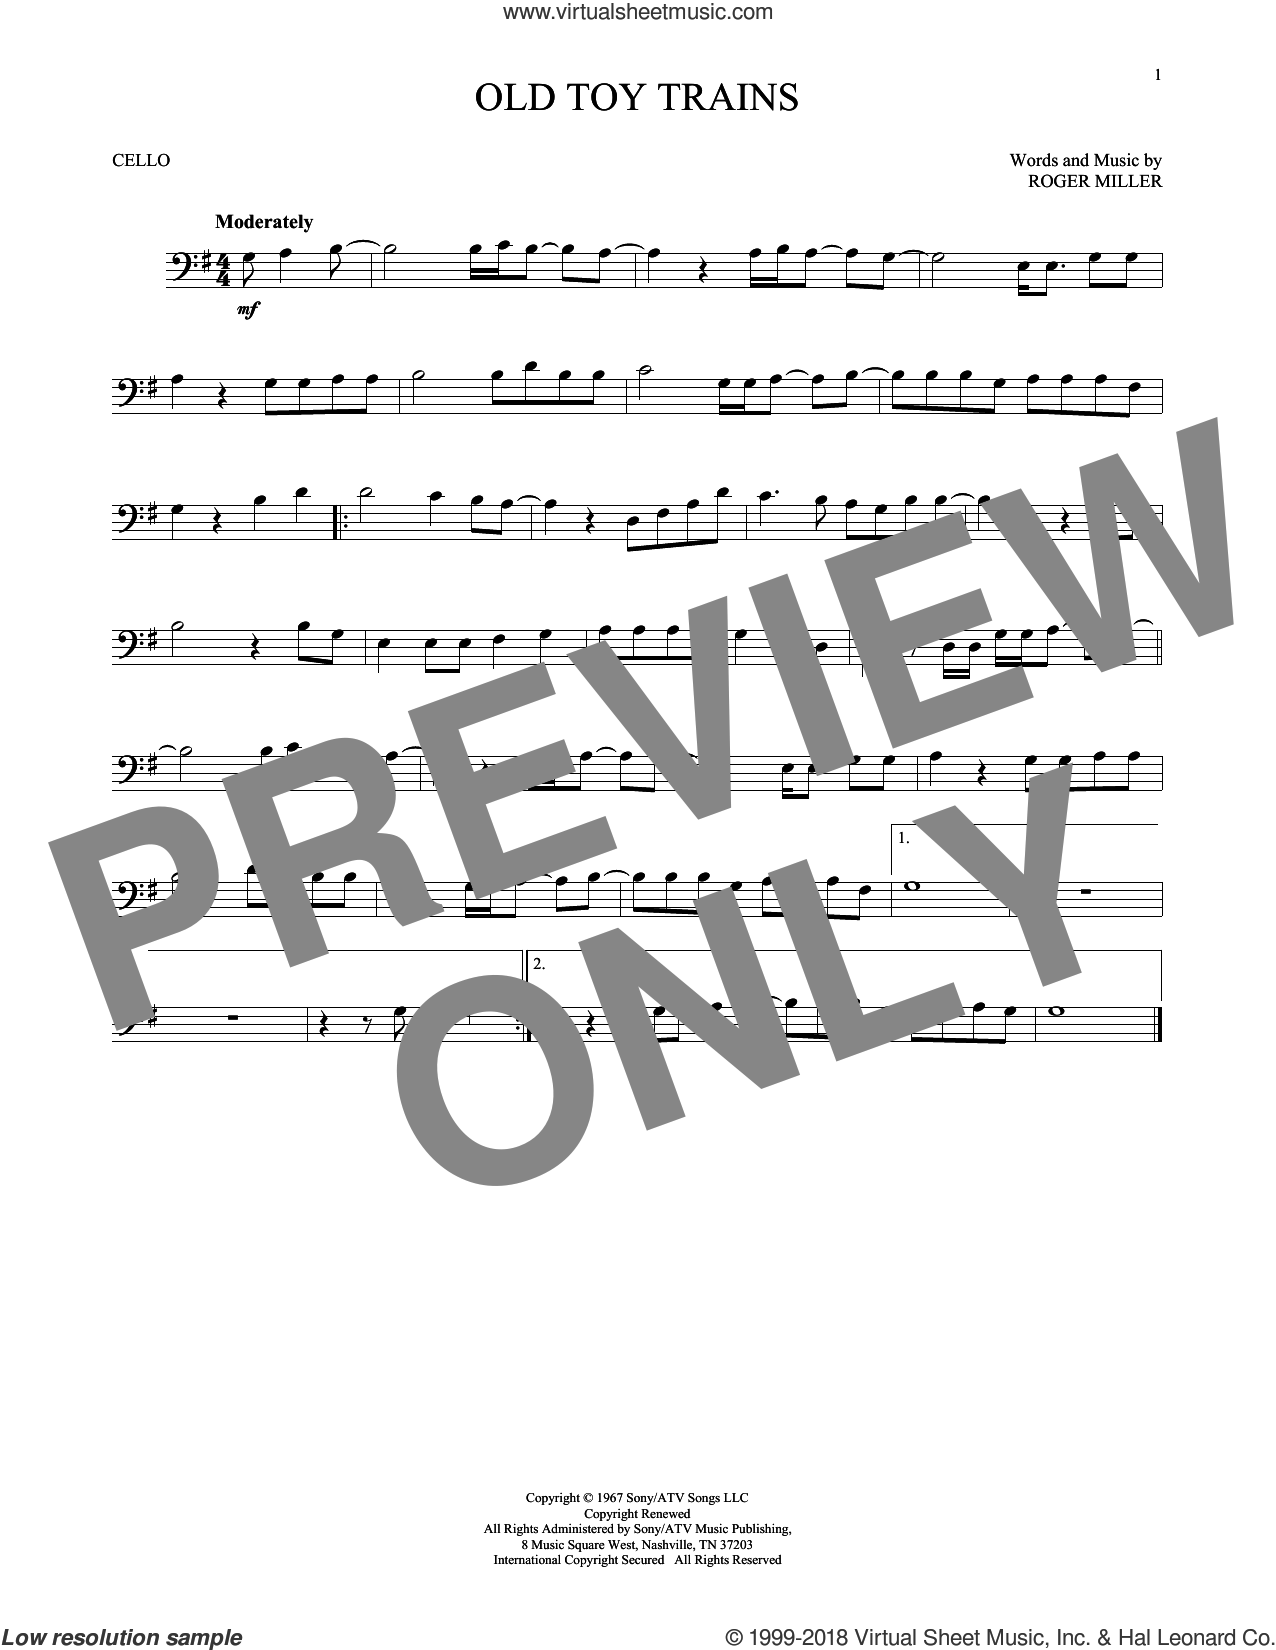 Old Toy Trains sheet music for cello solo by Roger Miller